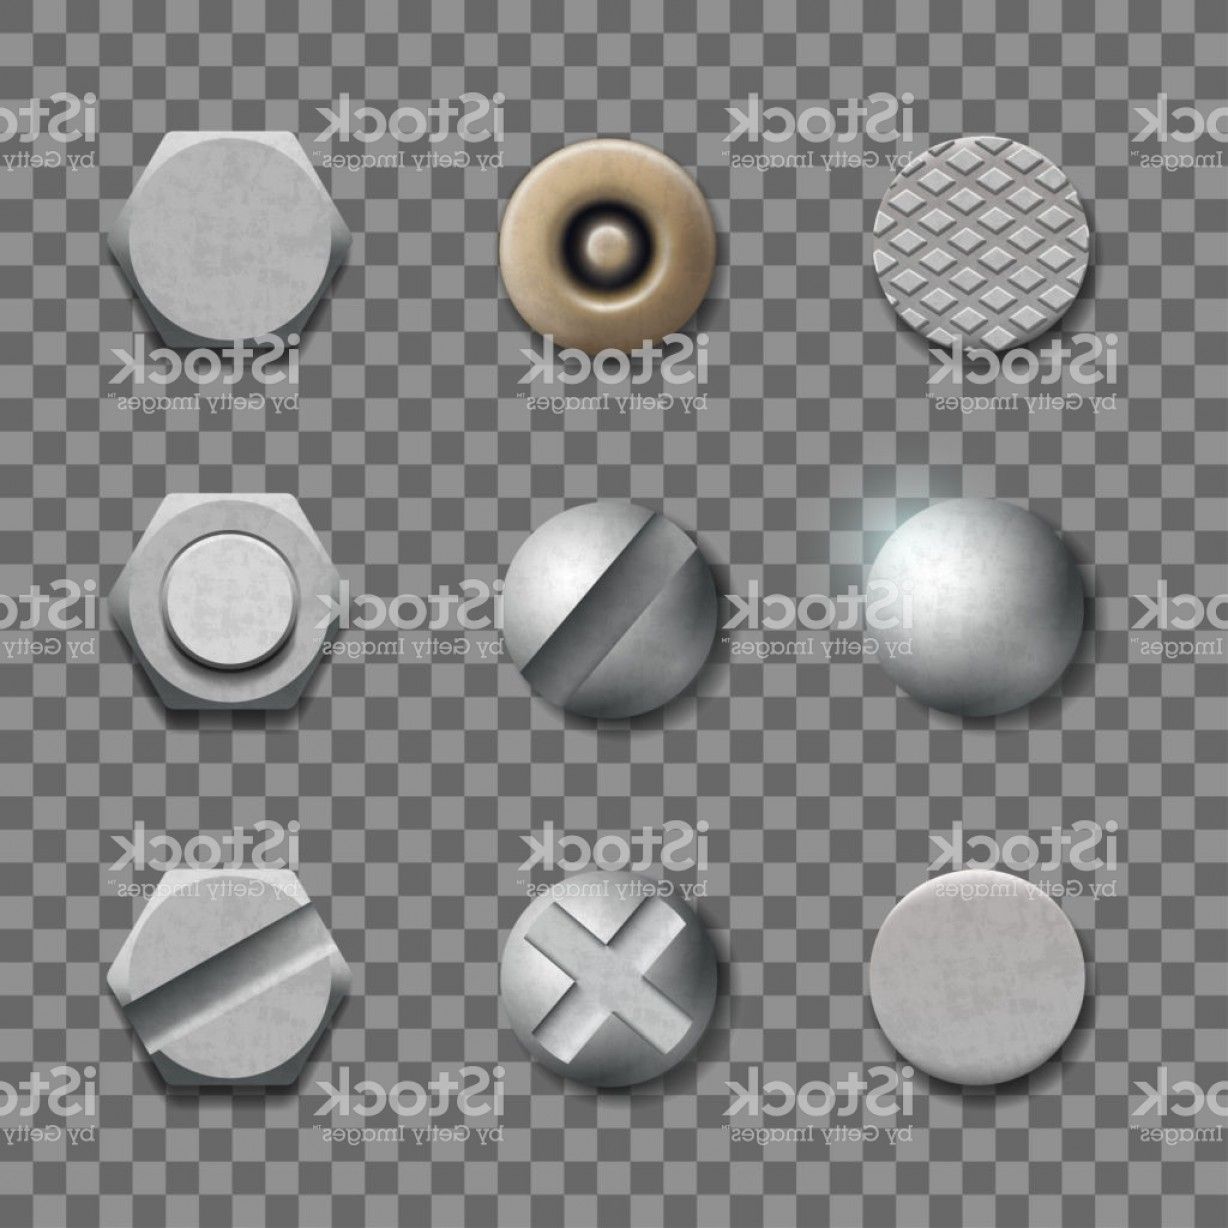 Bolt Head Vectors Gray: Screw Head Bolt Nail Isolated On Transparent Background Gm